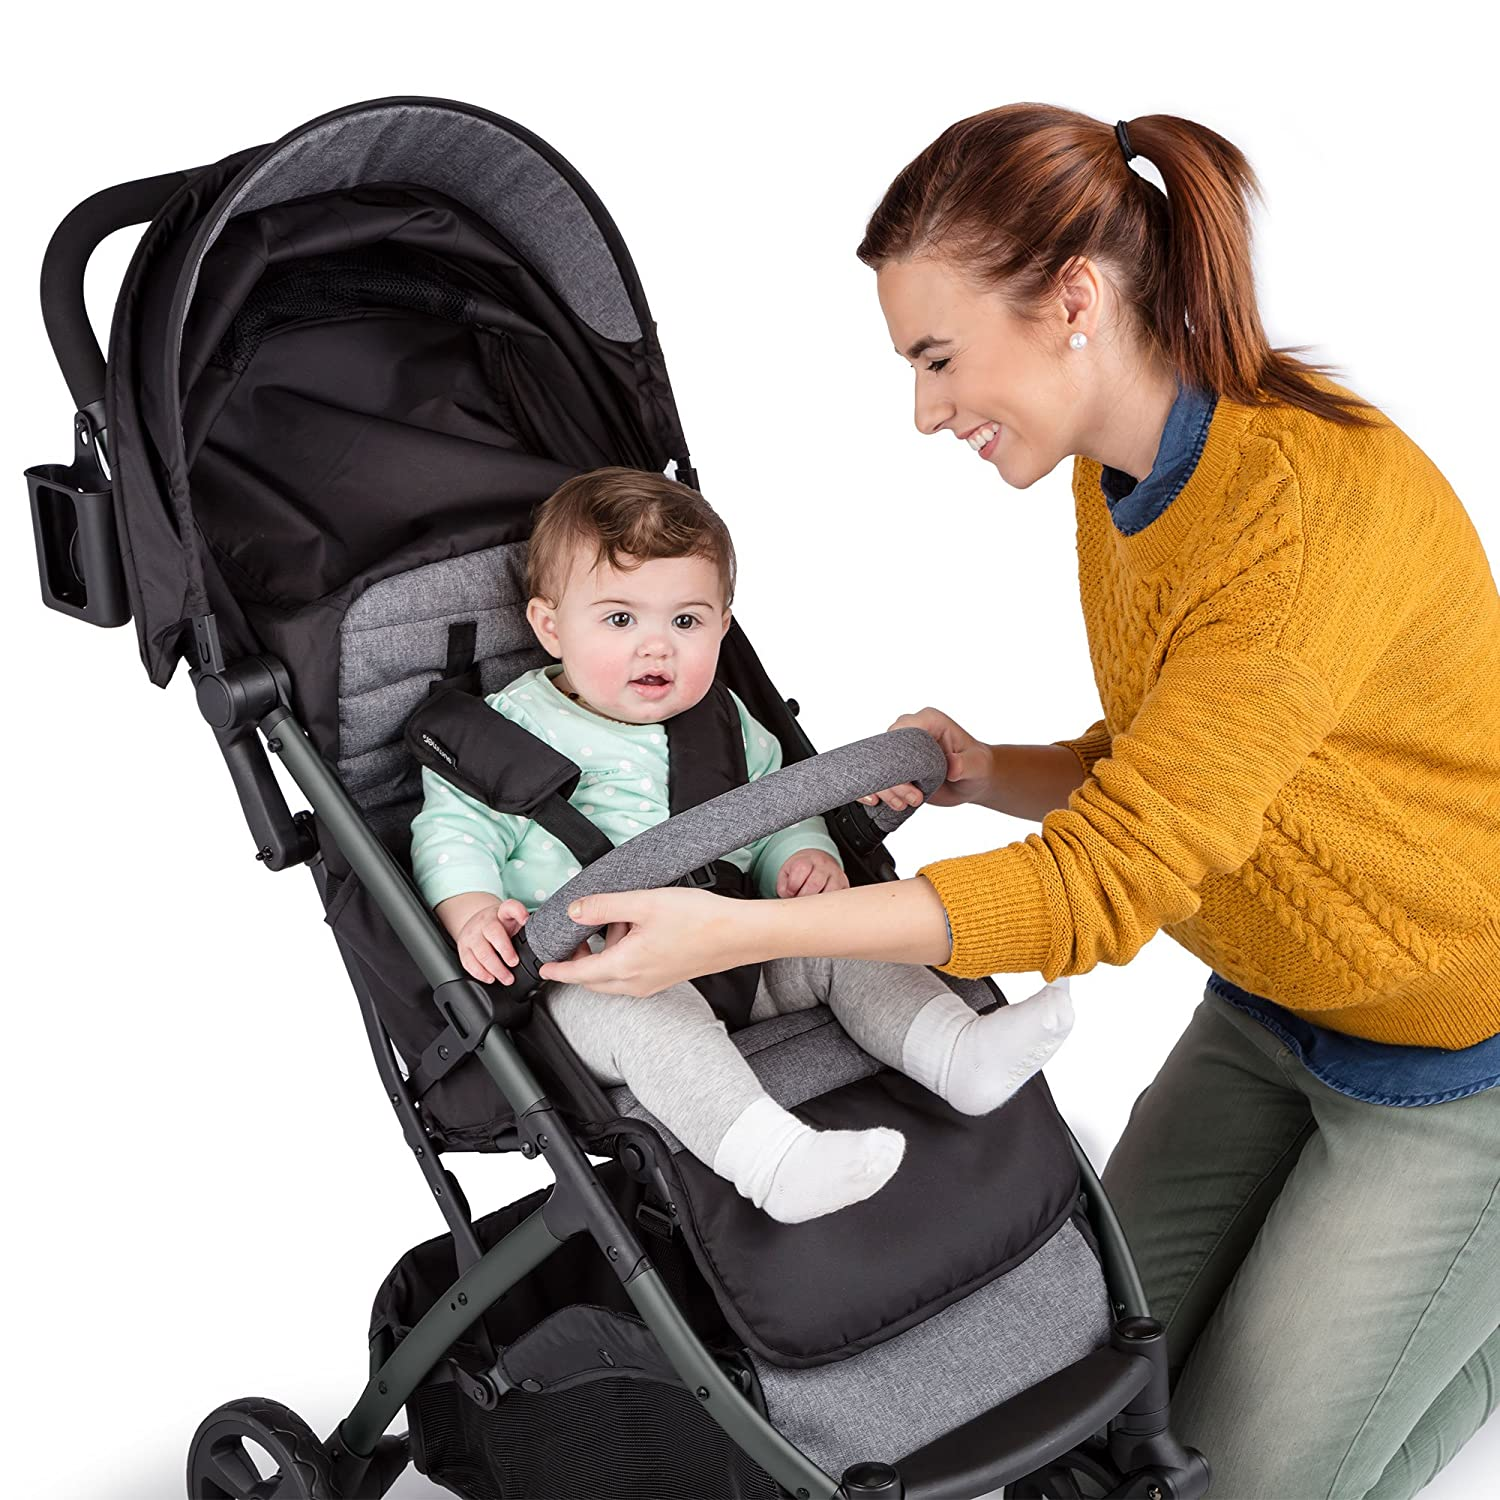 Summer Infant 3Dpac CS+ Compact Fold Stroller, Ash Gray 32723